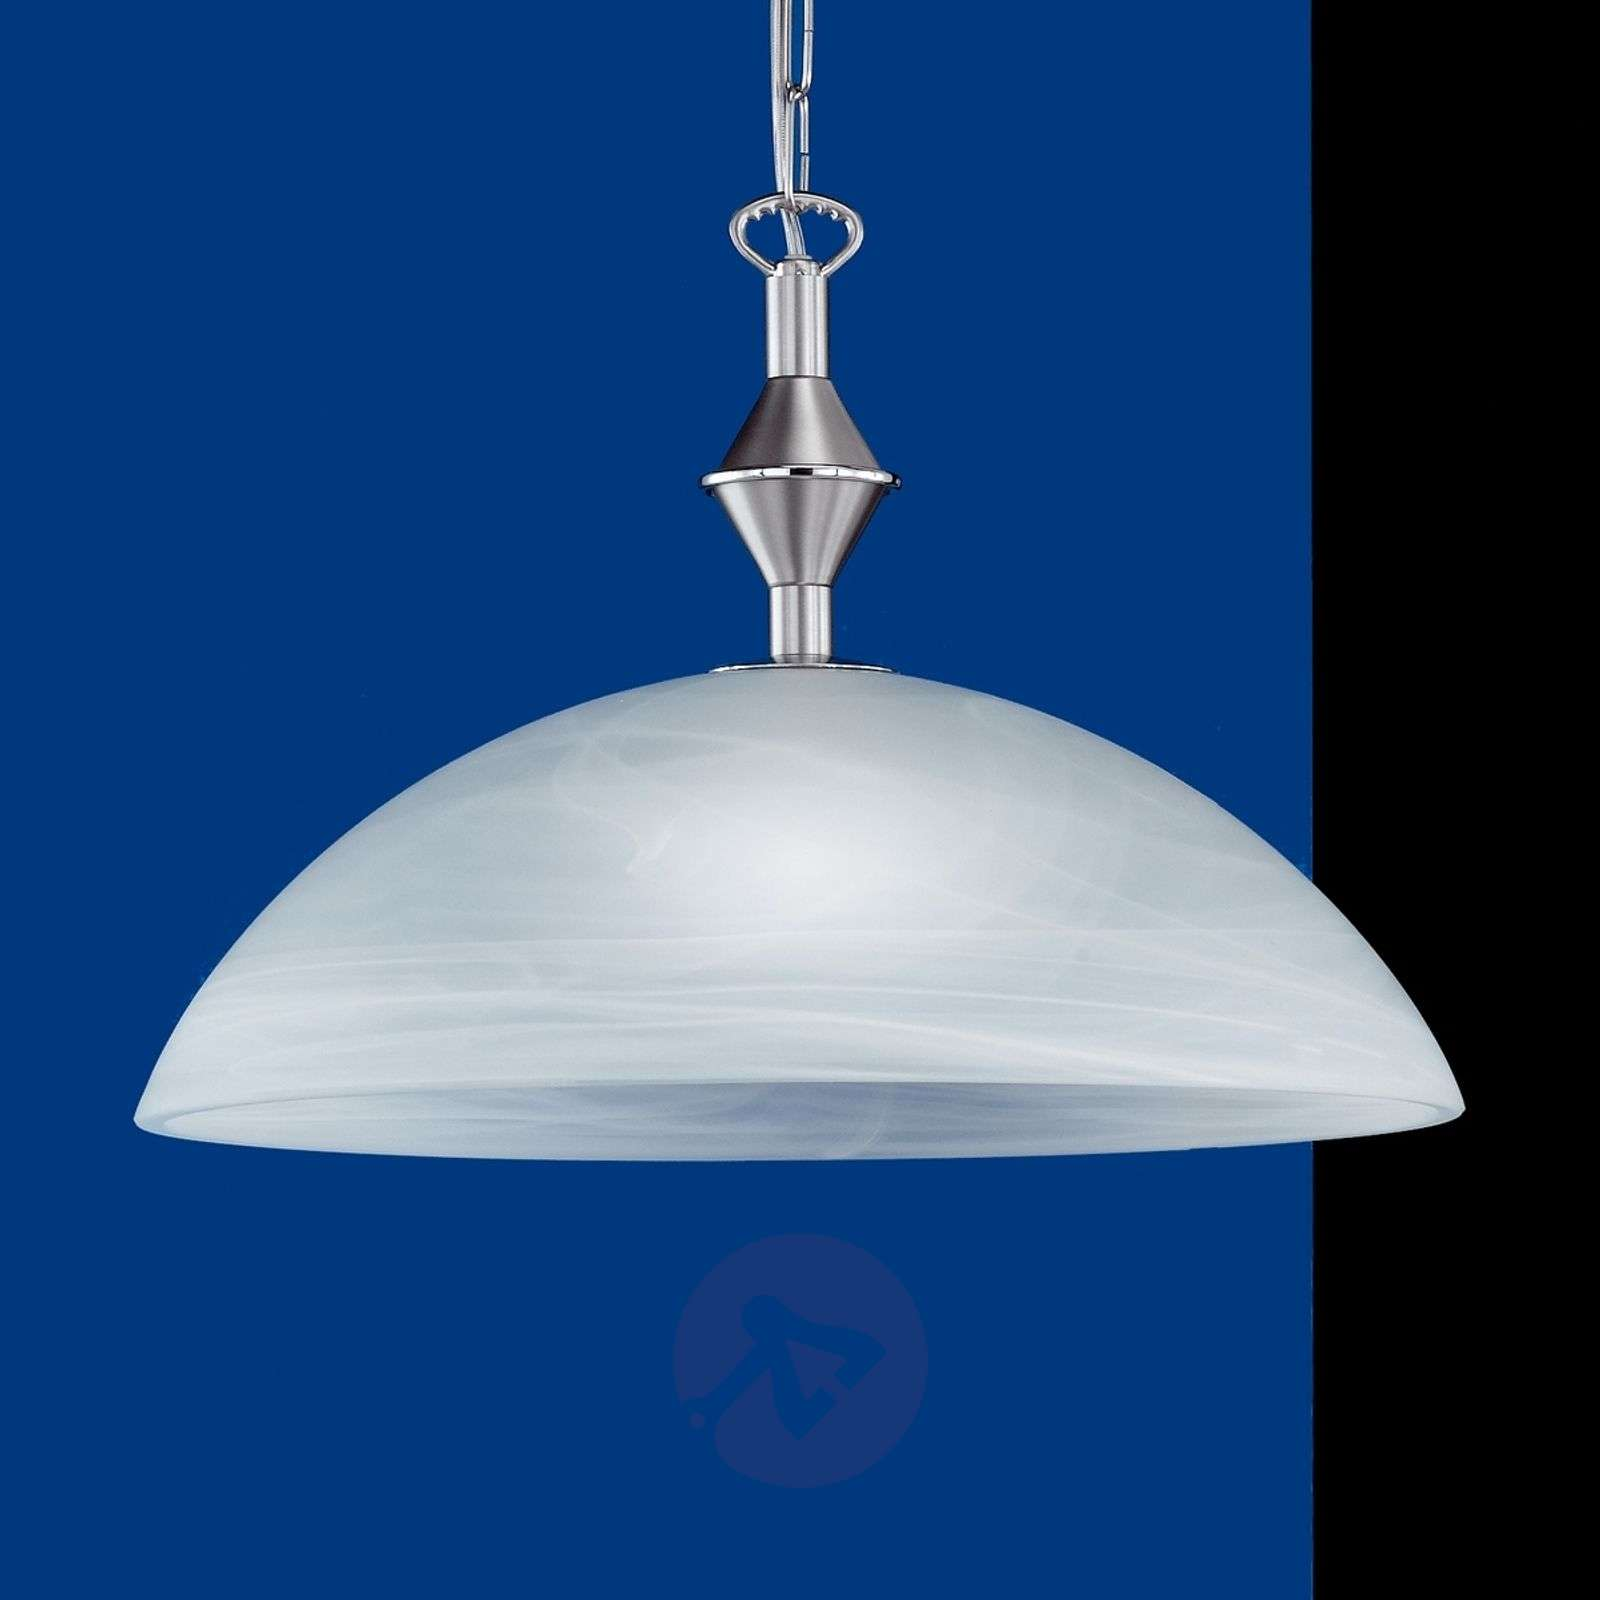 Amsterdam Hanging Light Decorative Matte Nickel-4509148-02